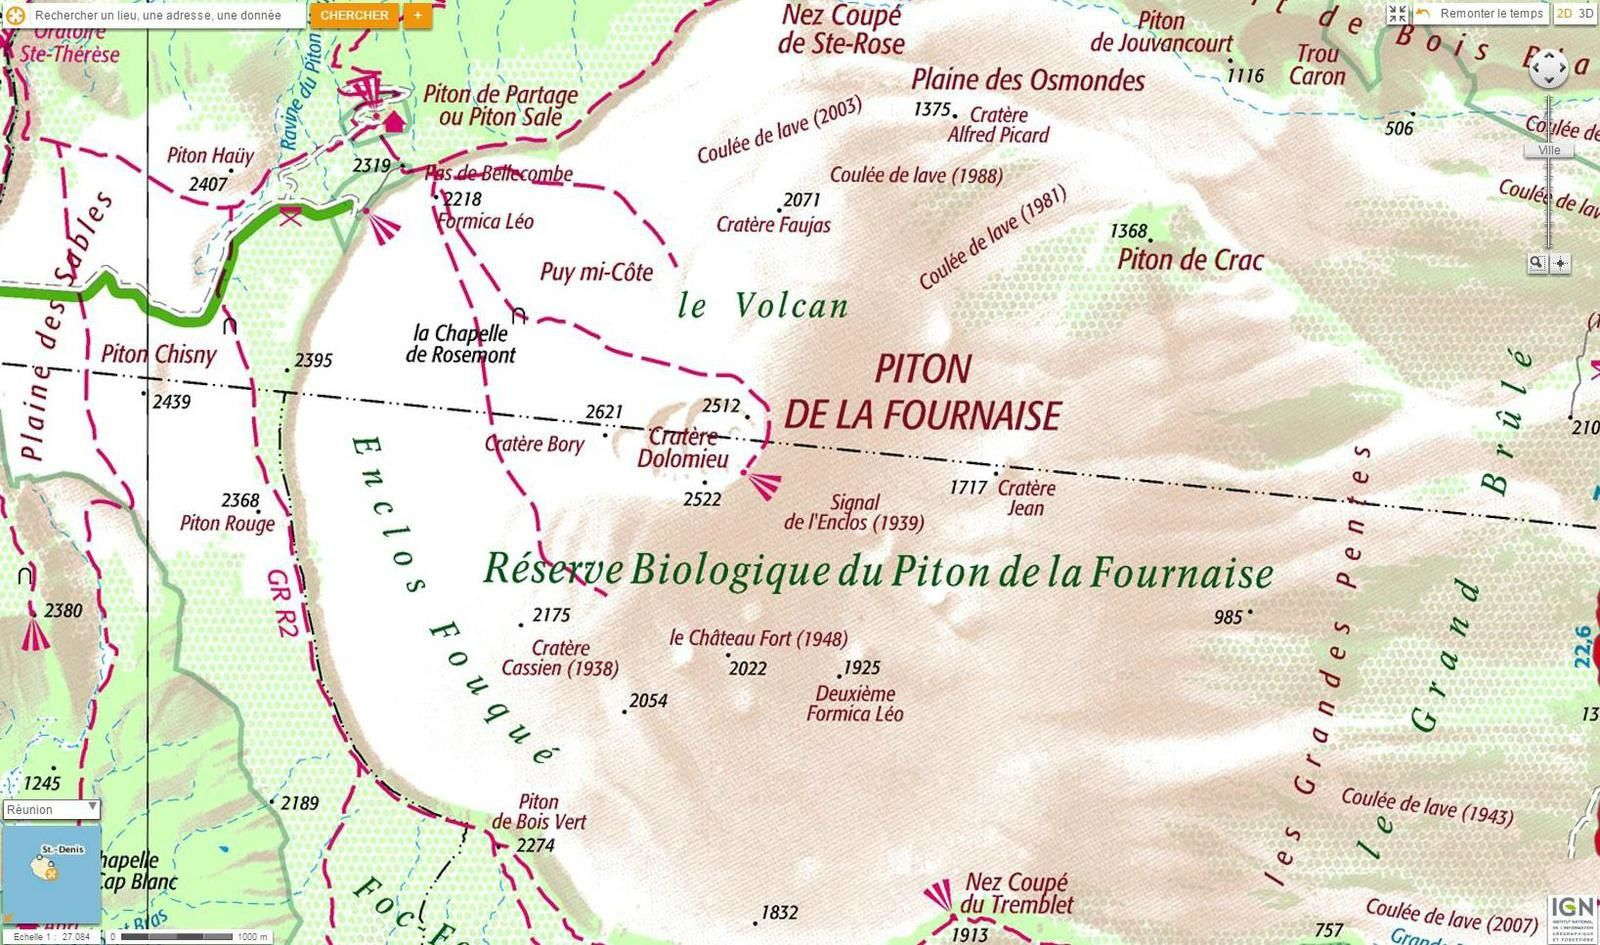 Piton de la Fournaise - authorized trails before 07/06/15 - Doc. 974 News weather